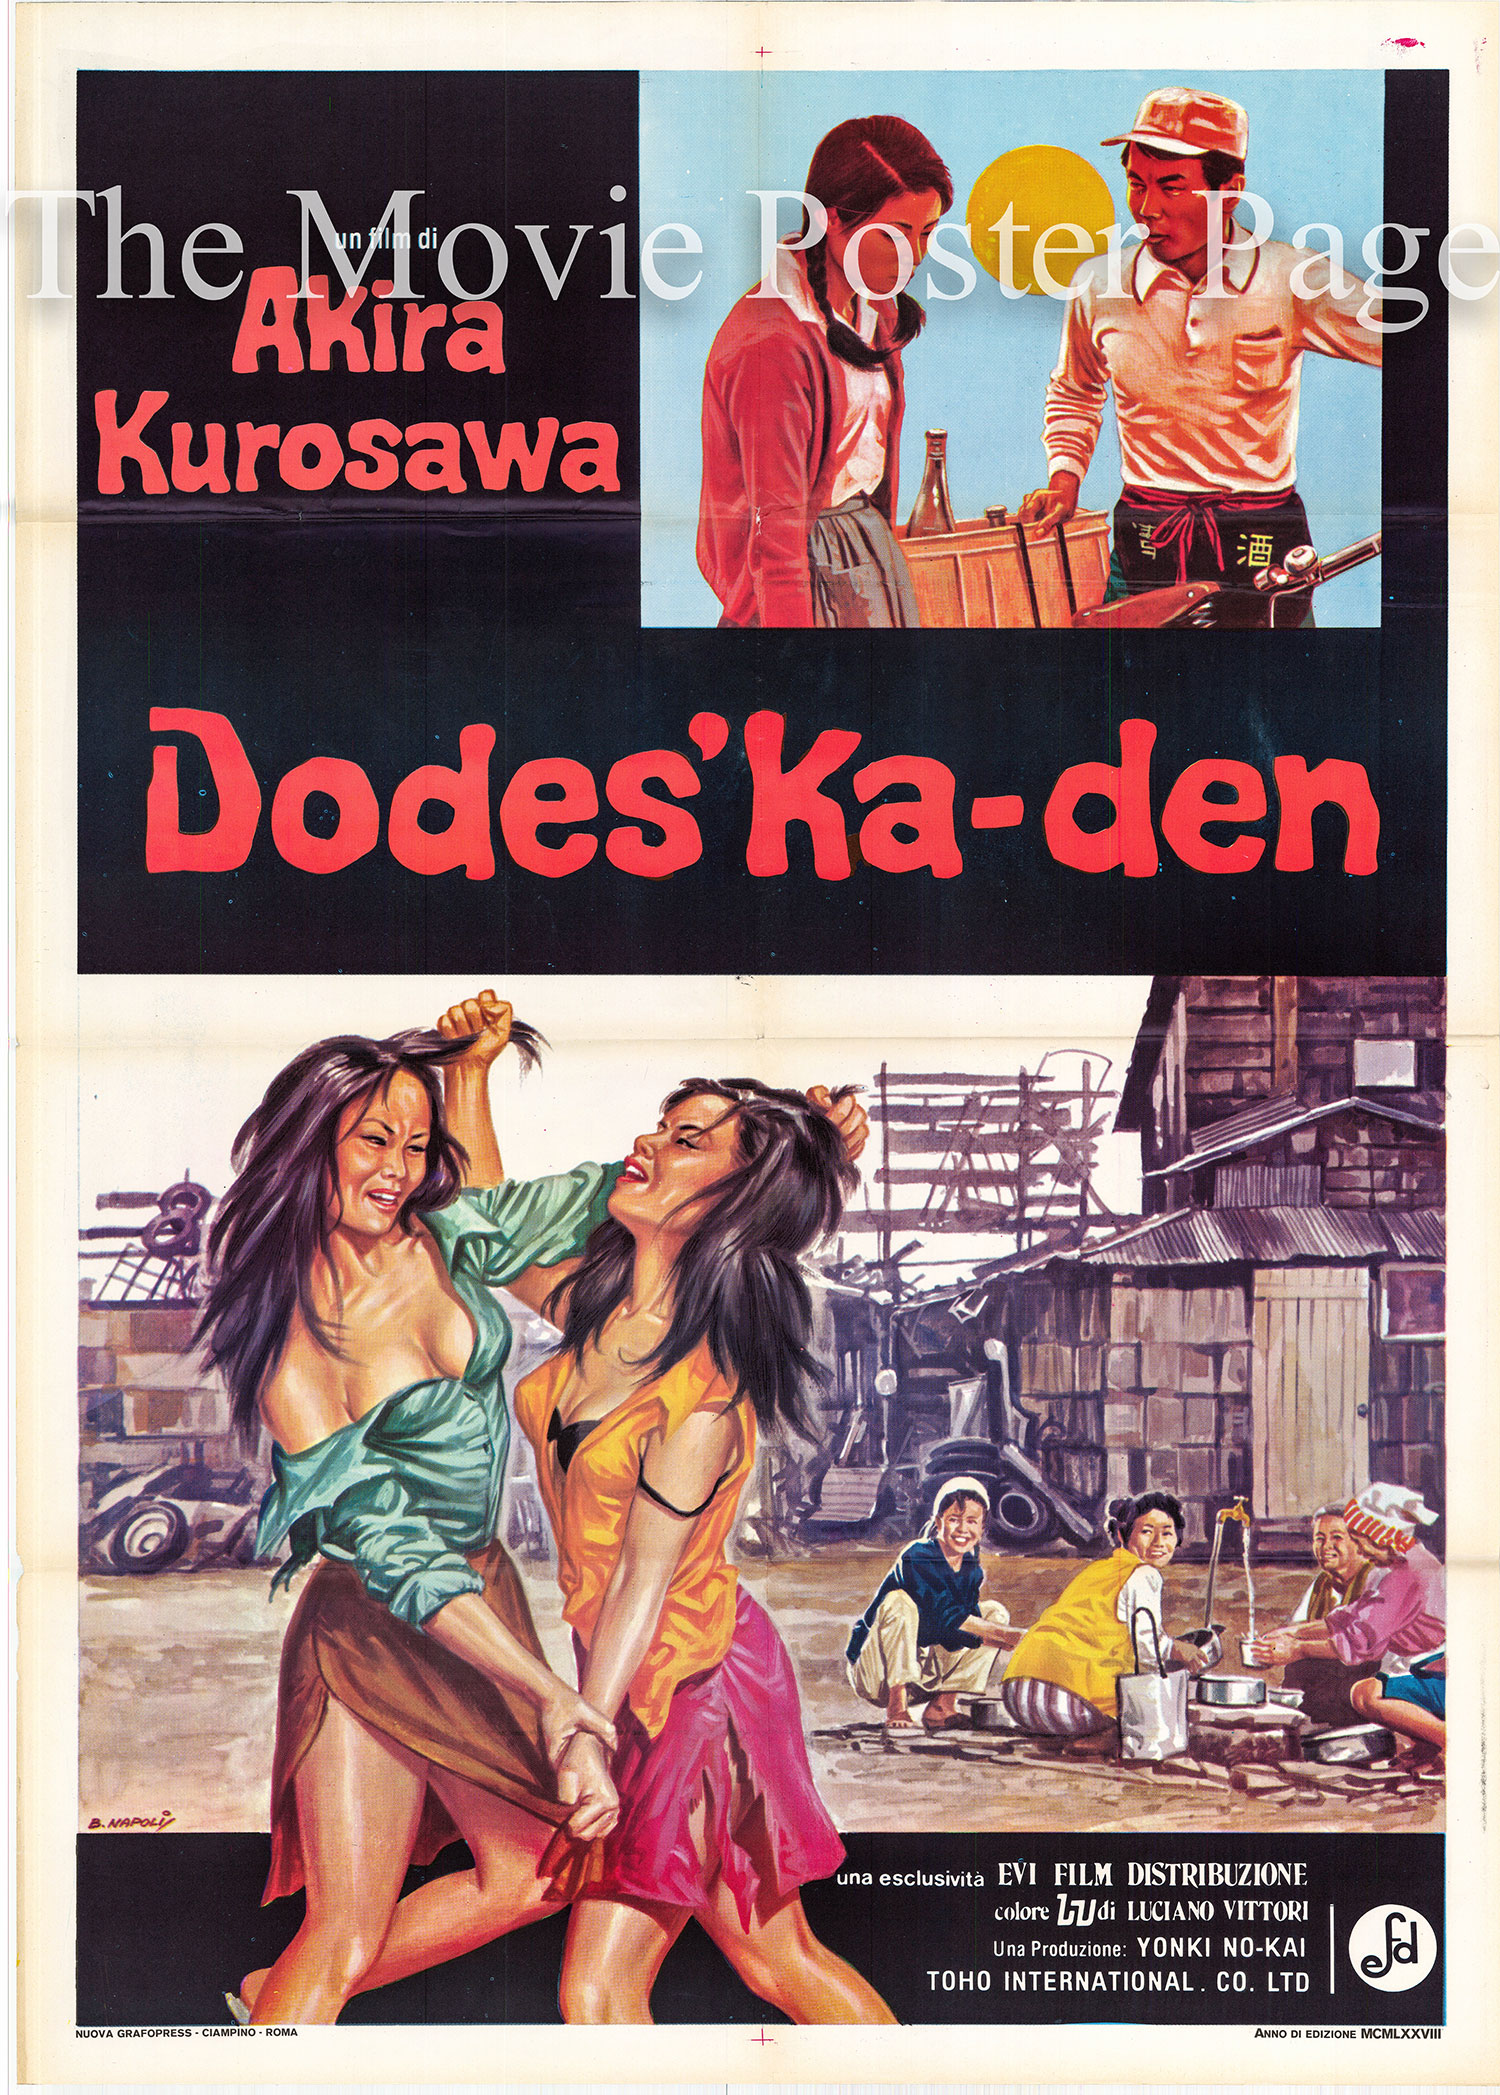 Pictured is an Italian two-sheet promotional poster for the 1970 Akira Kurosawa film Dodeskaden starring Yoshitaka Zushi as Roku-chan.